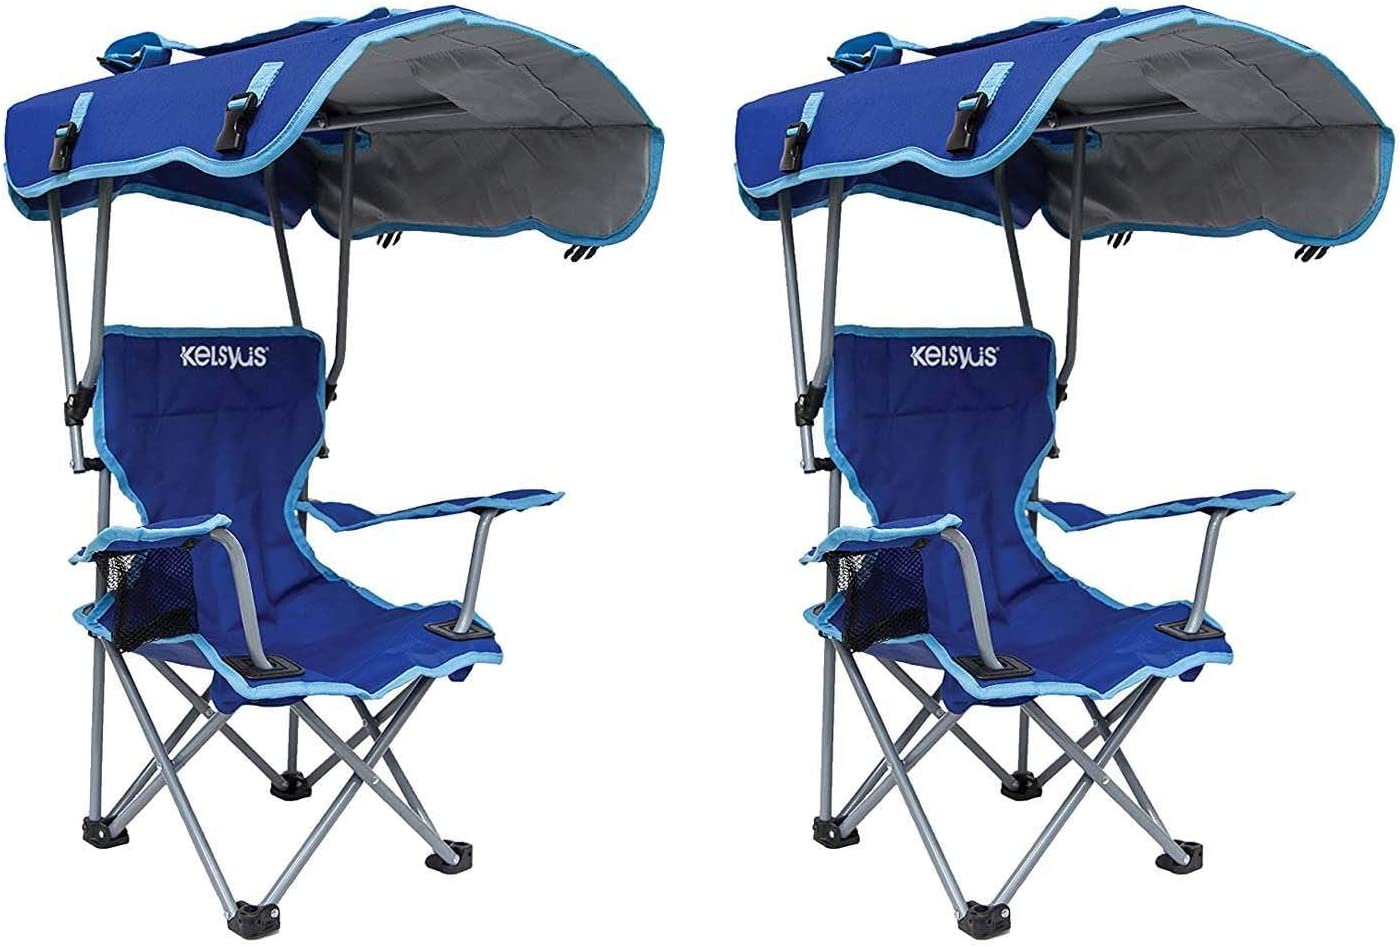 Kelsyus Kids Original Canopy Folding Backpack Lounge Chair 2 Pack Blue 80316